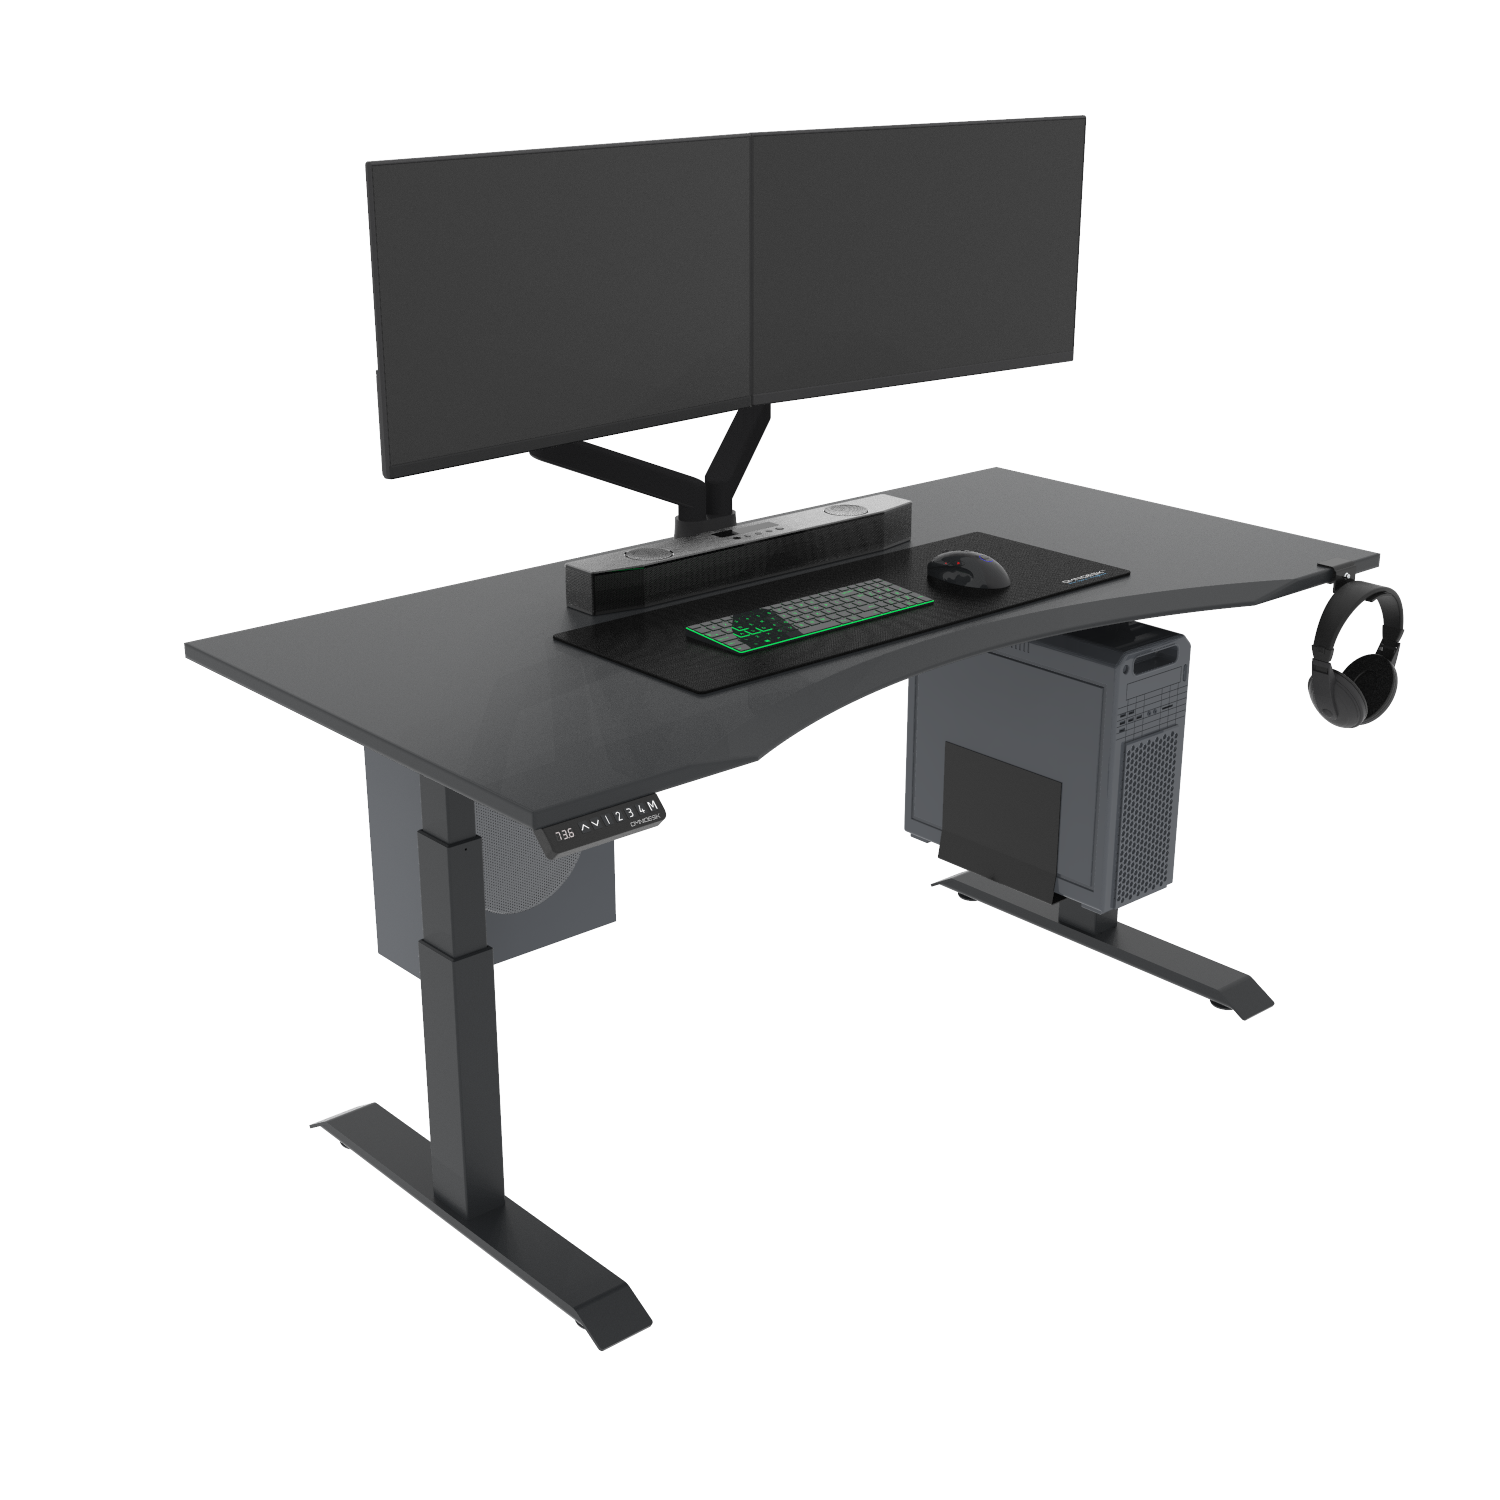 Omnidesk Pro - Custom Standing Desk from $680